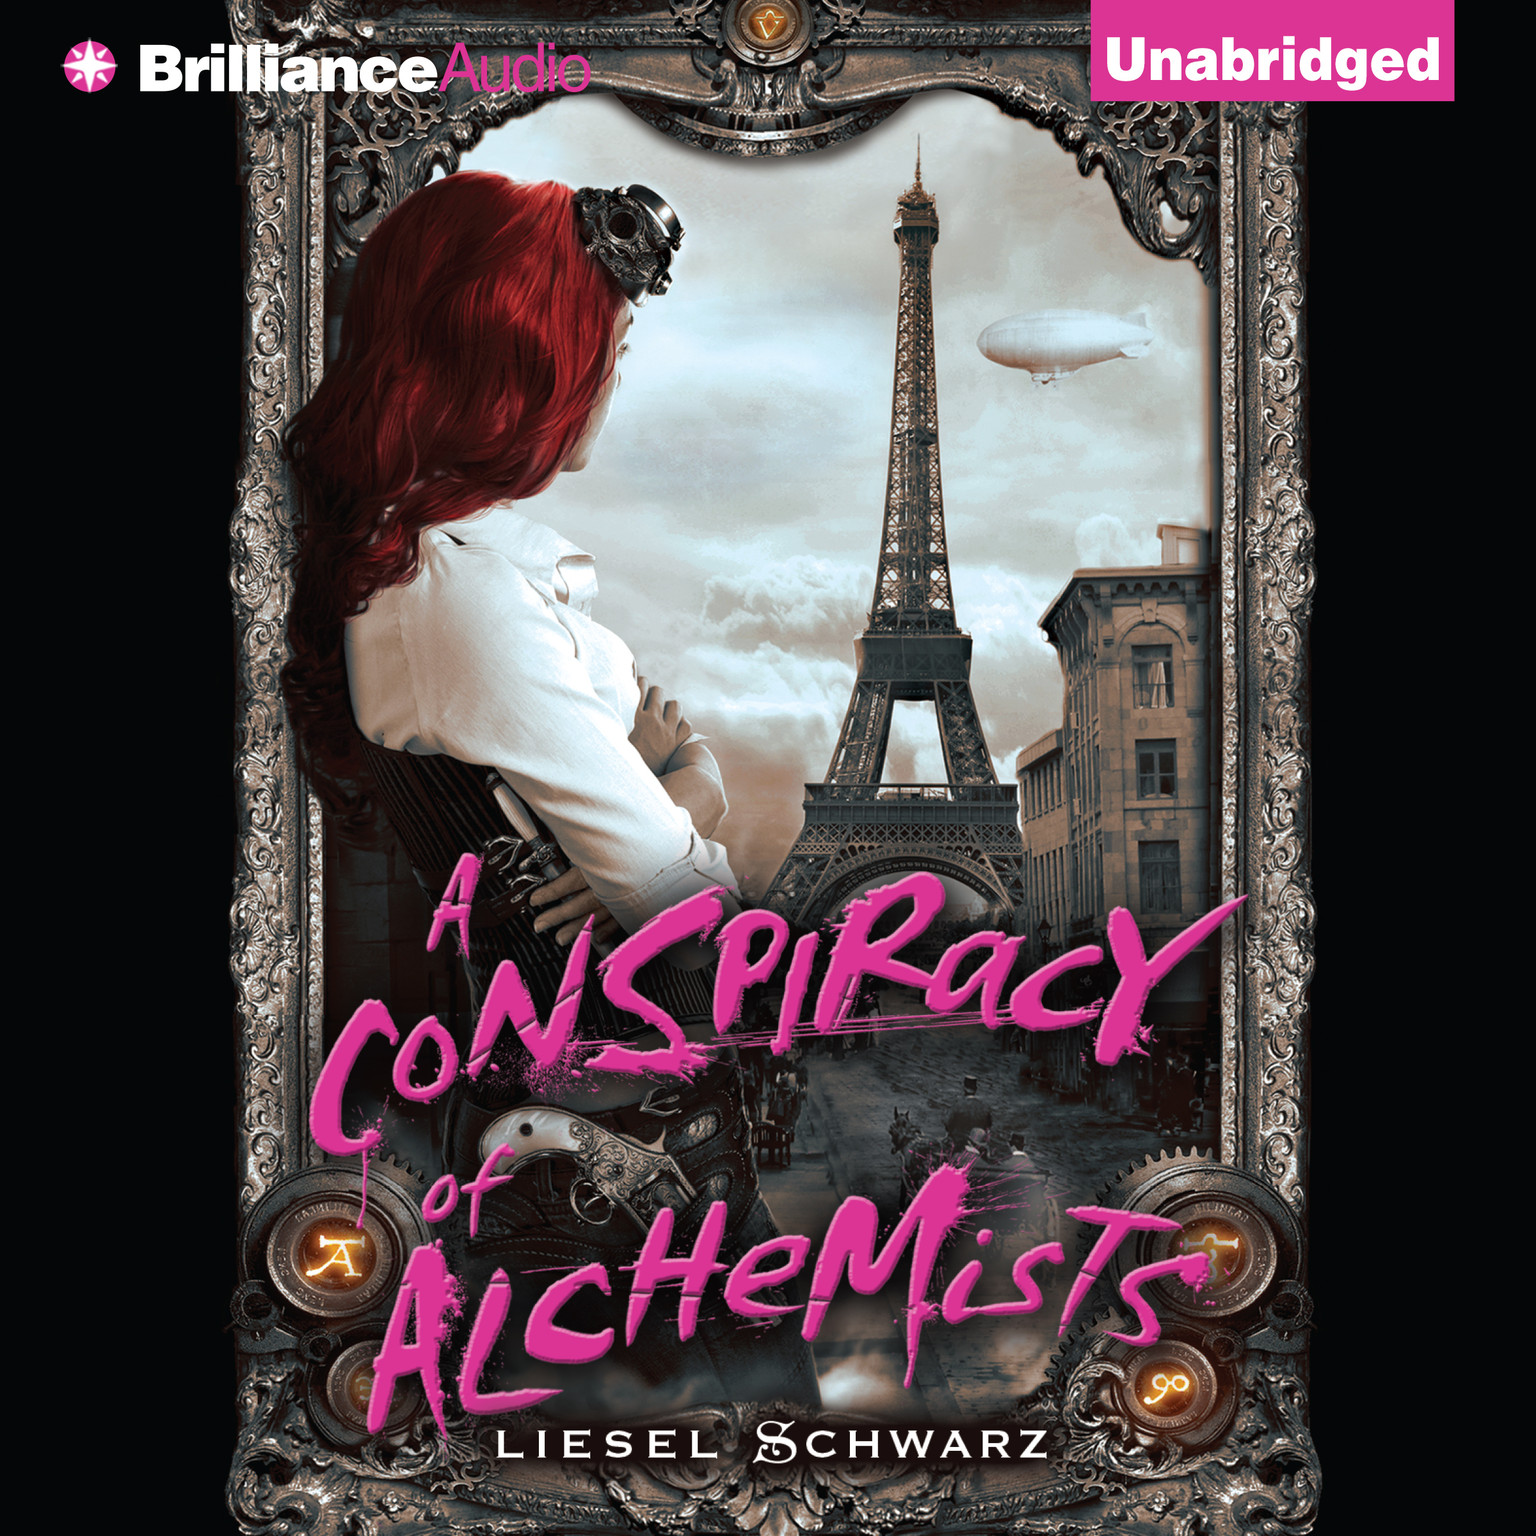 Printable A Conspiracy of Alchemists Audiobook Cover Art